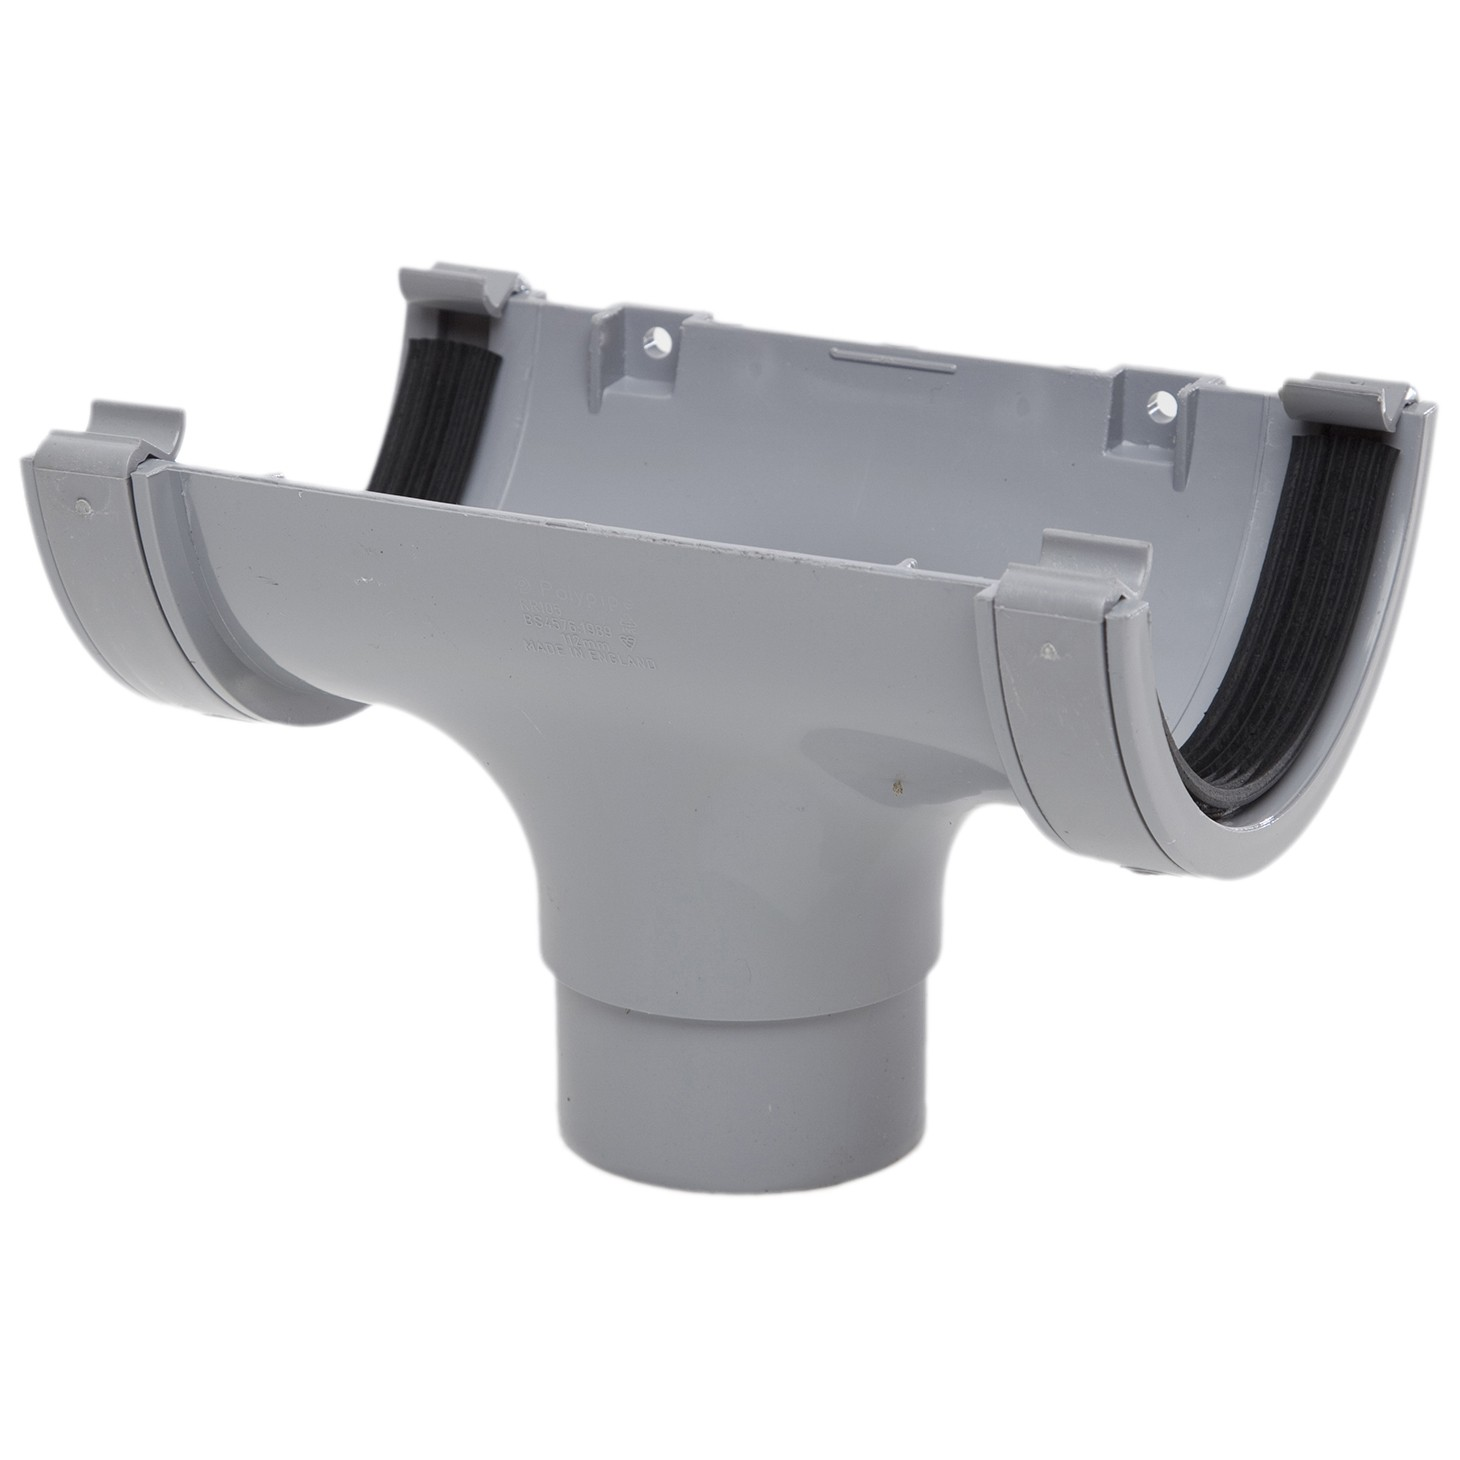 Polypipe 112mm Half Round Gutter Running Outlet - Grey